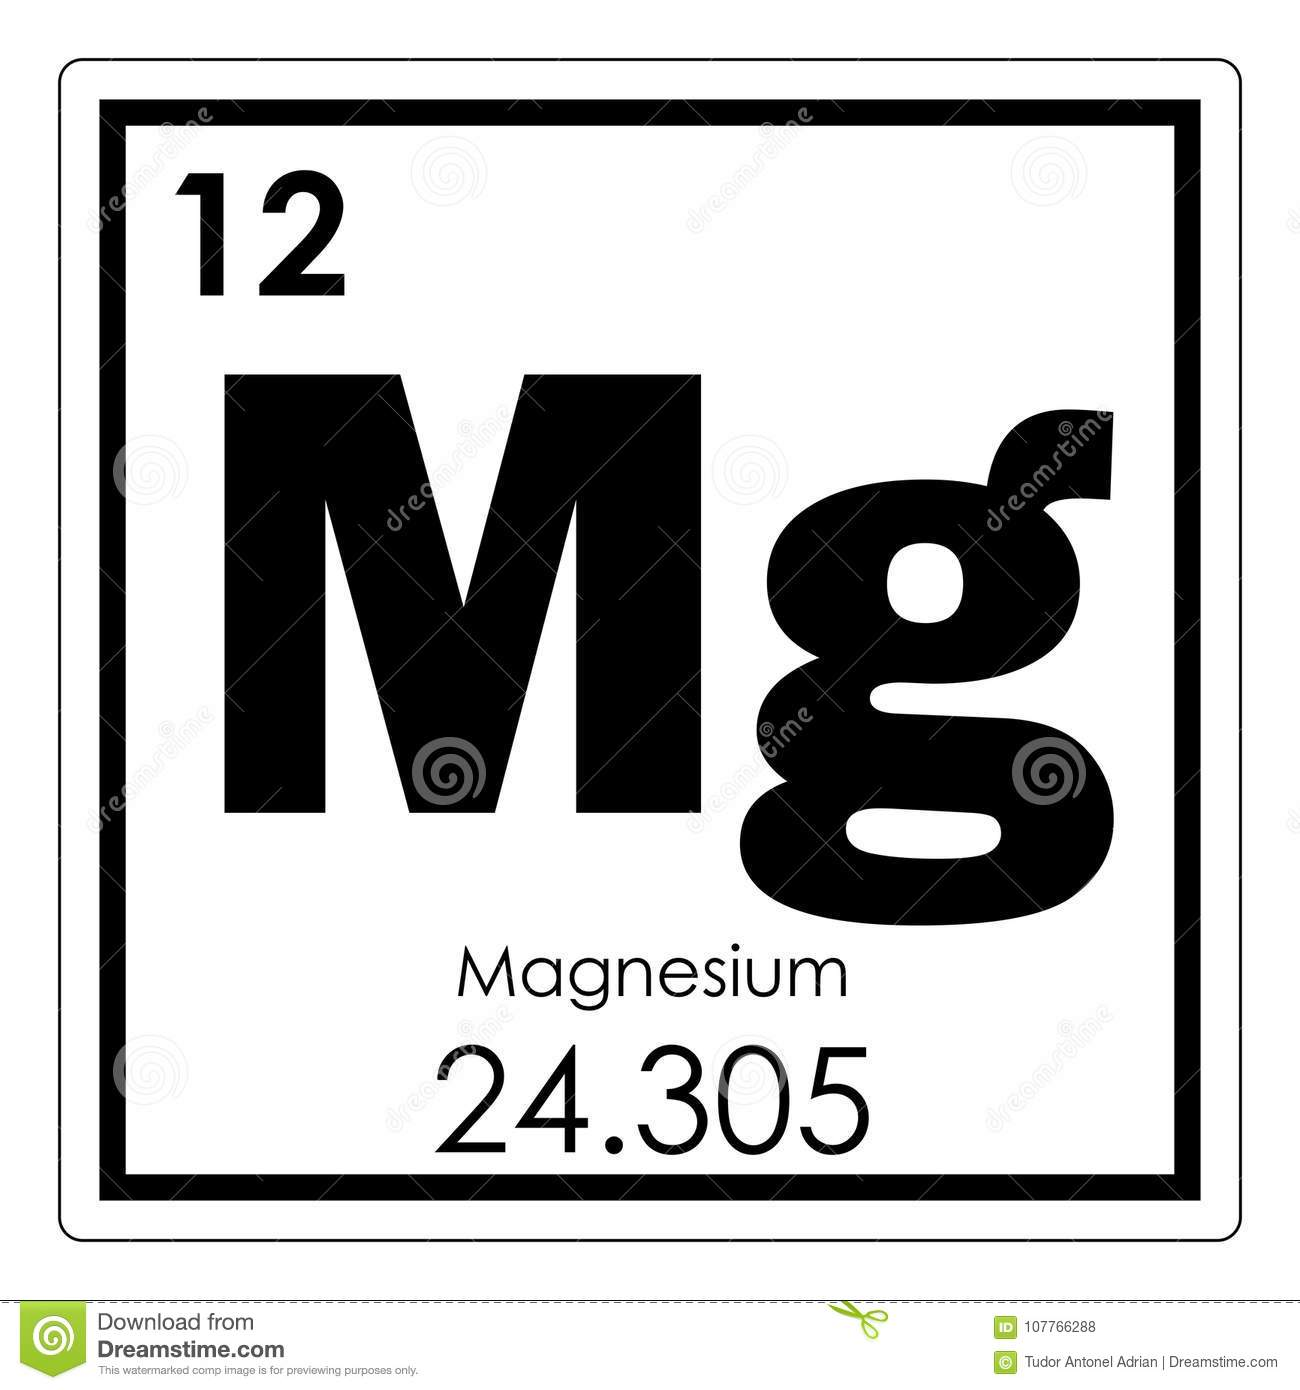 Magnesium chemical element stock illustration illustration of magnesium chemical element urtaz